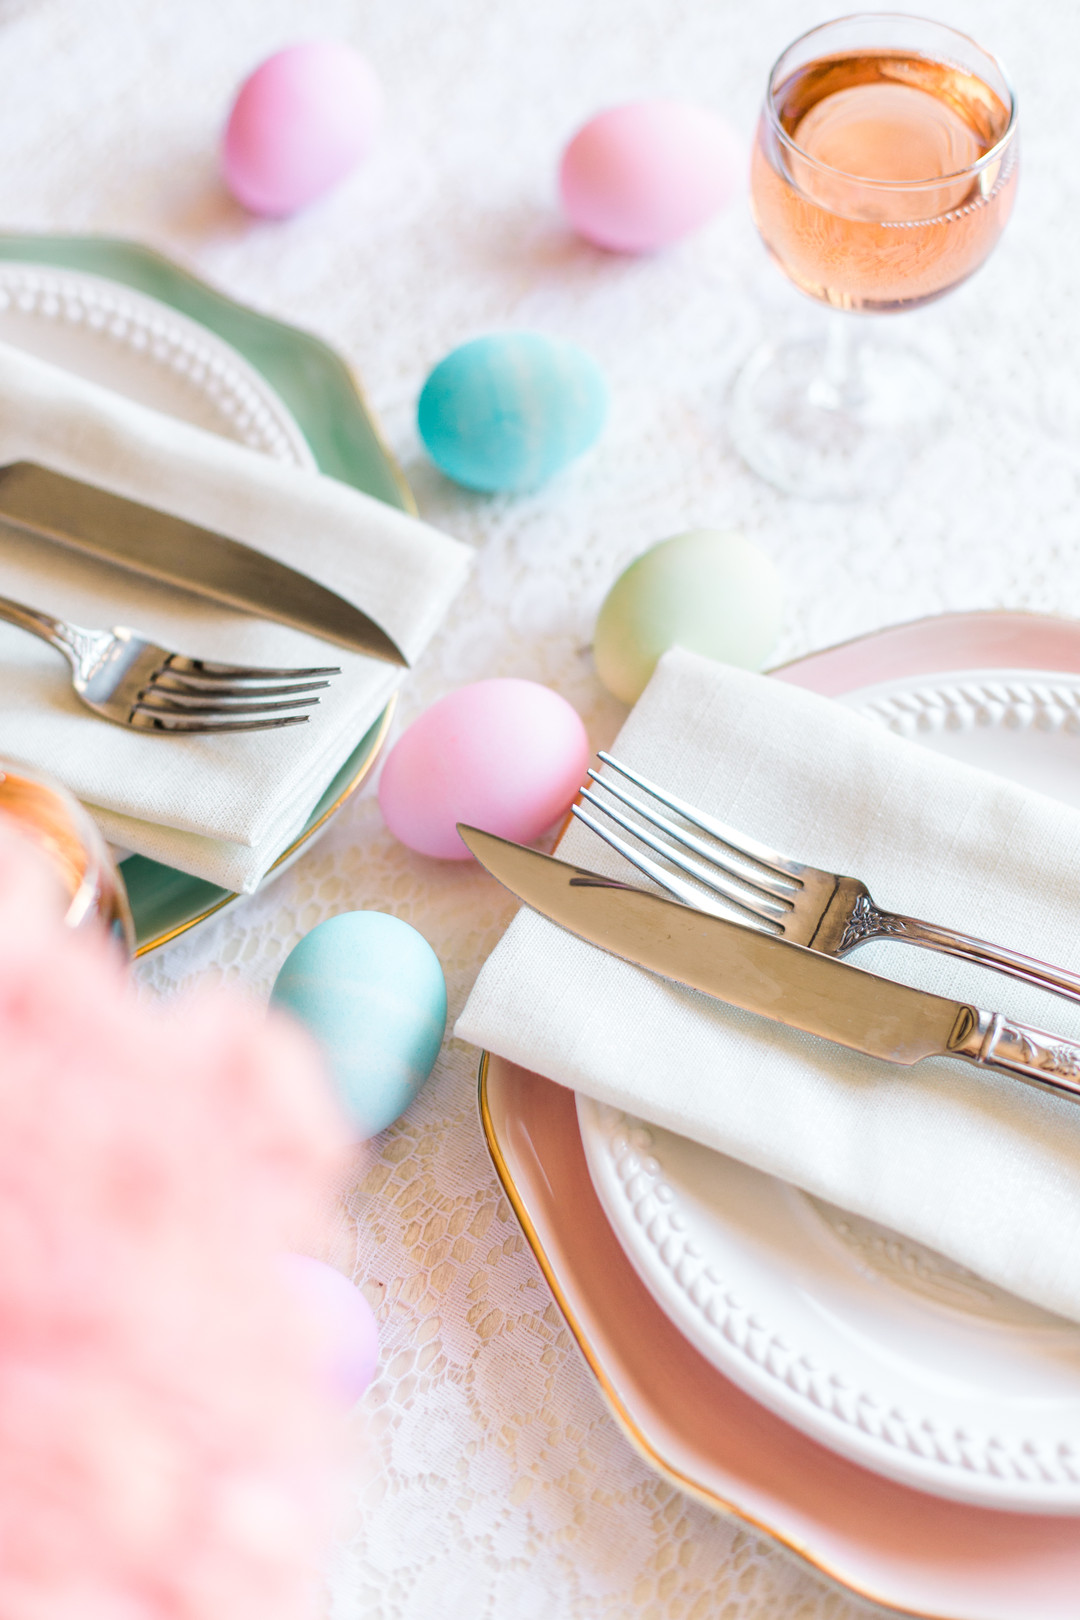 Staal_KristinaStaalPhotography_KristinaStaalPhotographyEasterTablescape201630_big Easy Entertaining: Easter Brunch Inspiration for Two